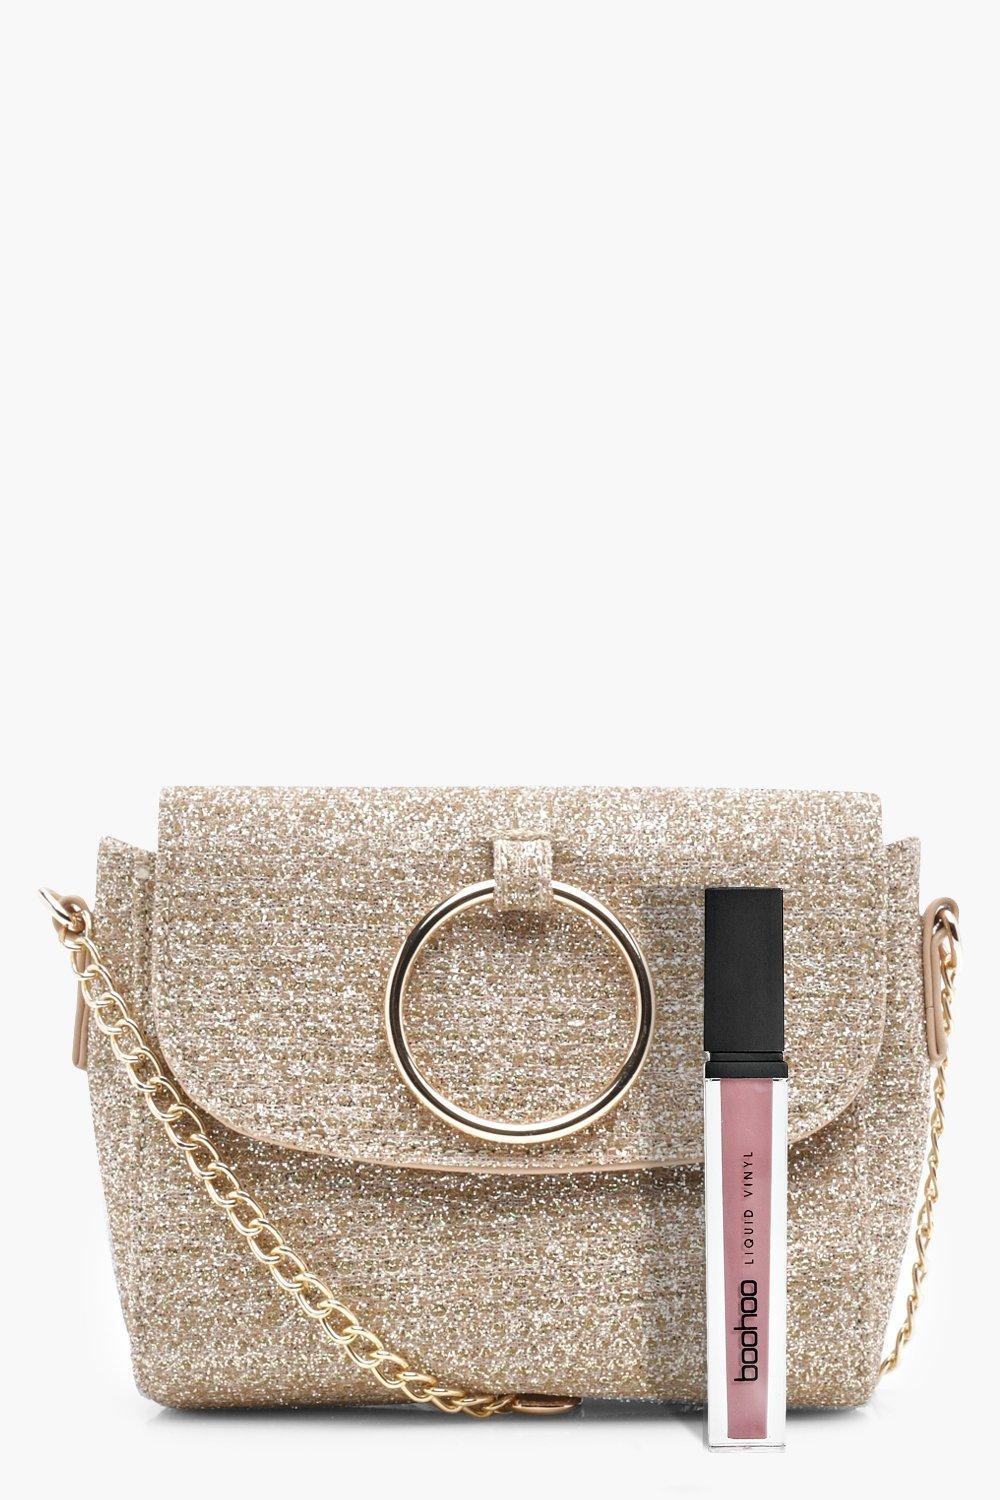 Boohoo Antoinette O Ring Metallic Cross Body Bag